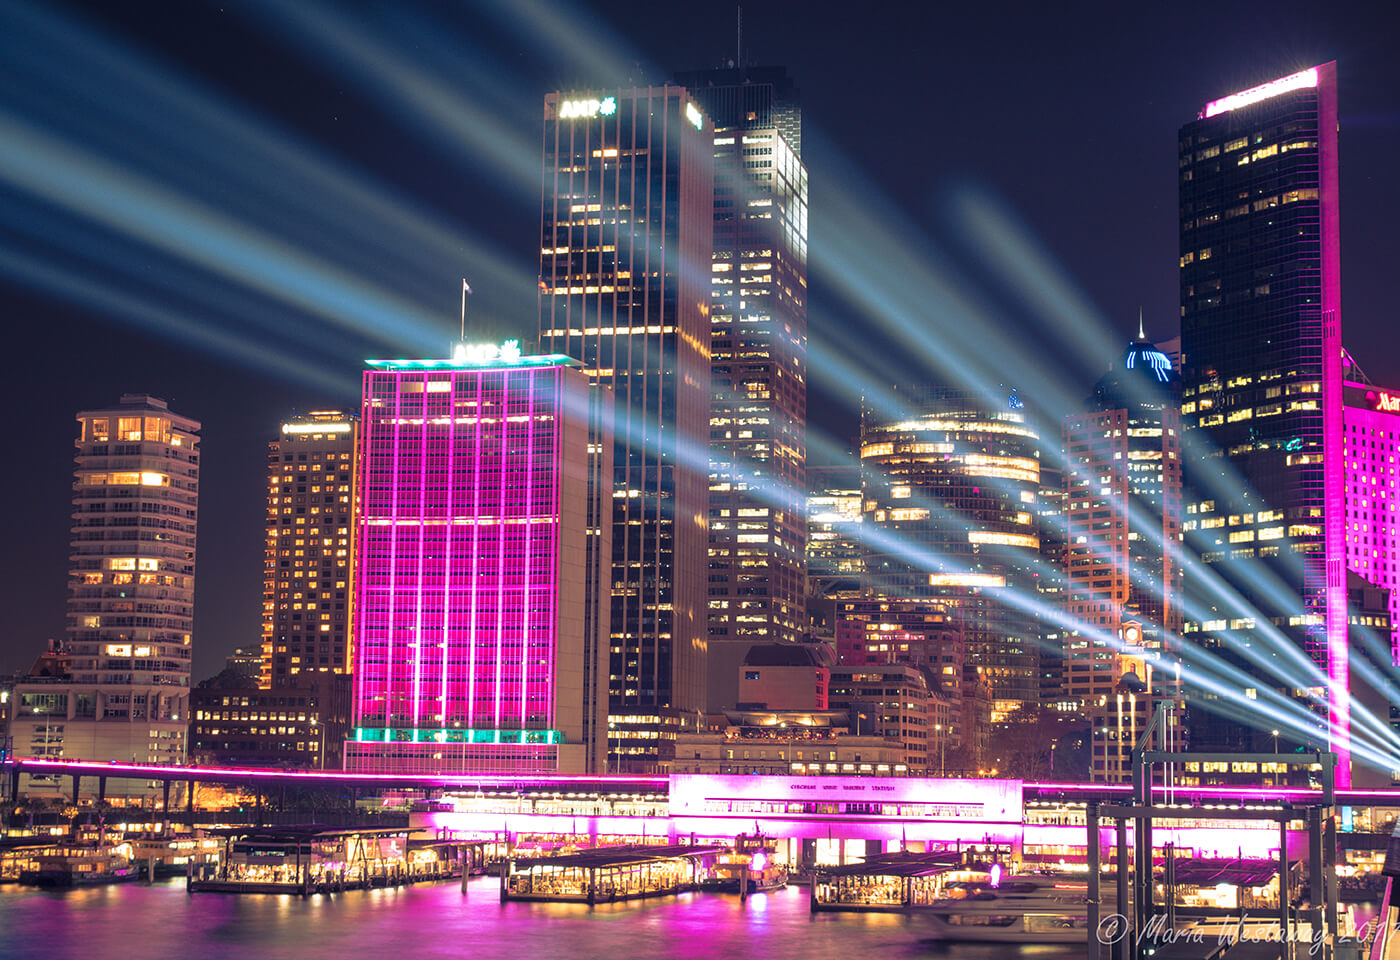 Night image of Sydney CBD taken during Vivid